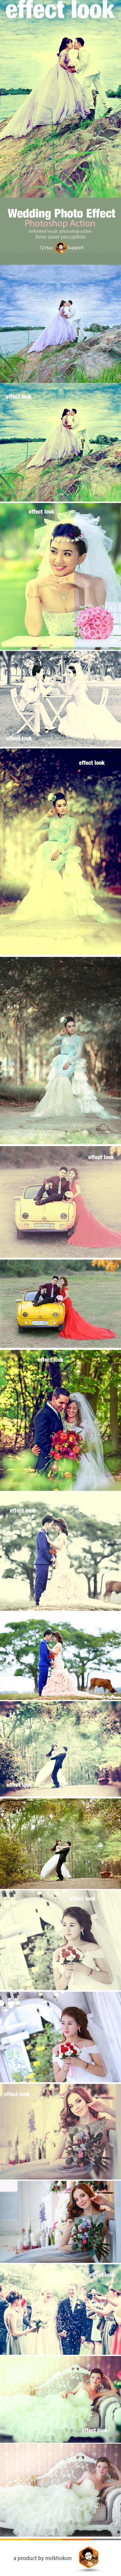 Wedding Photo Effect - Photo Effects Actions